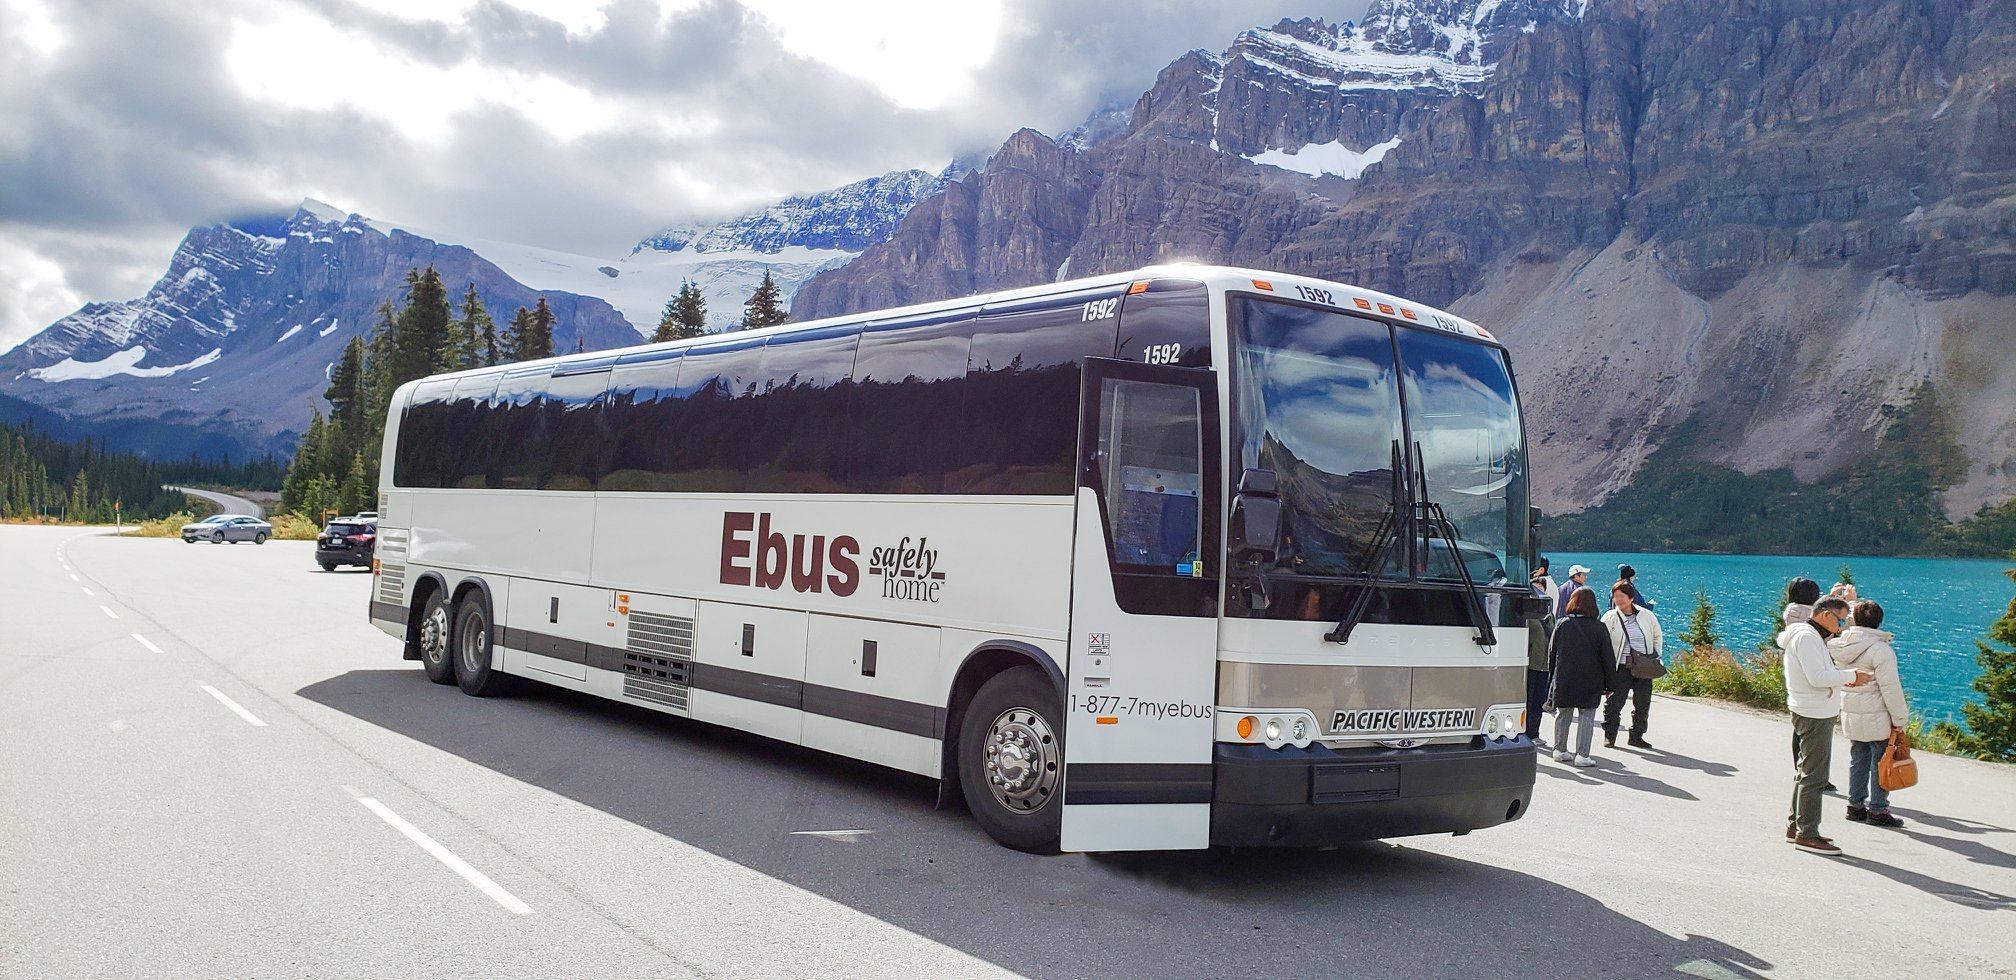 Ebus modifying route times, some stops in B.C.